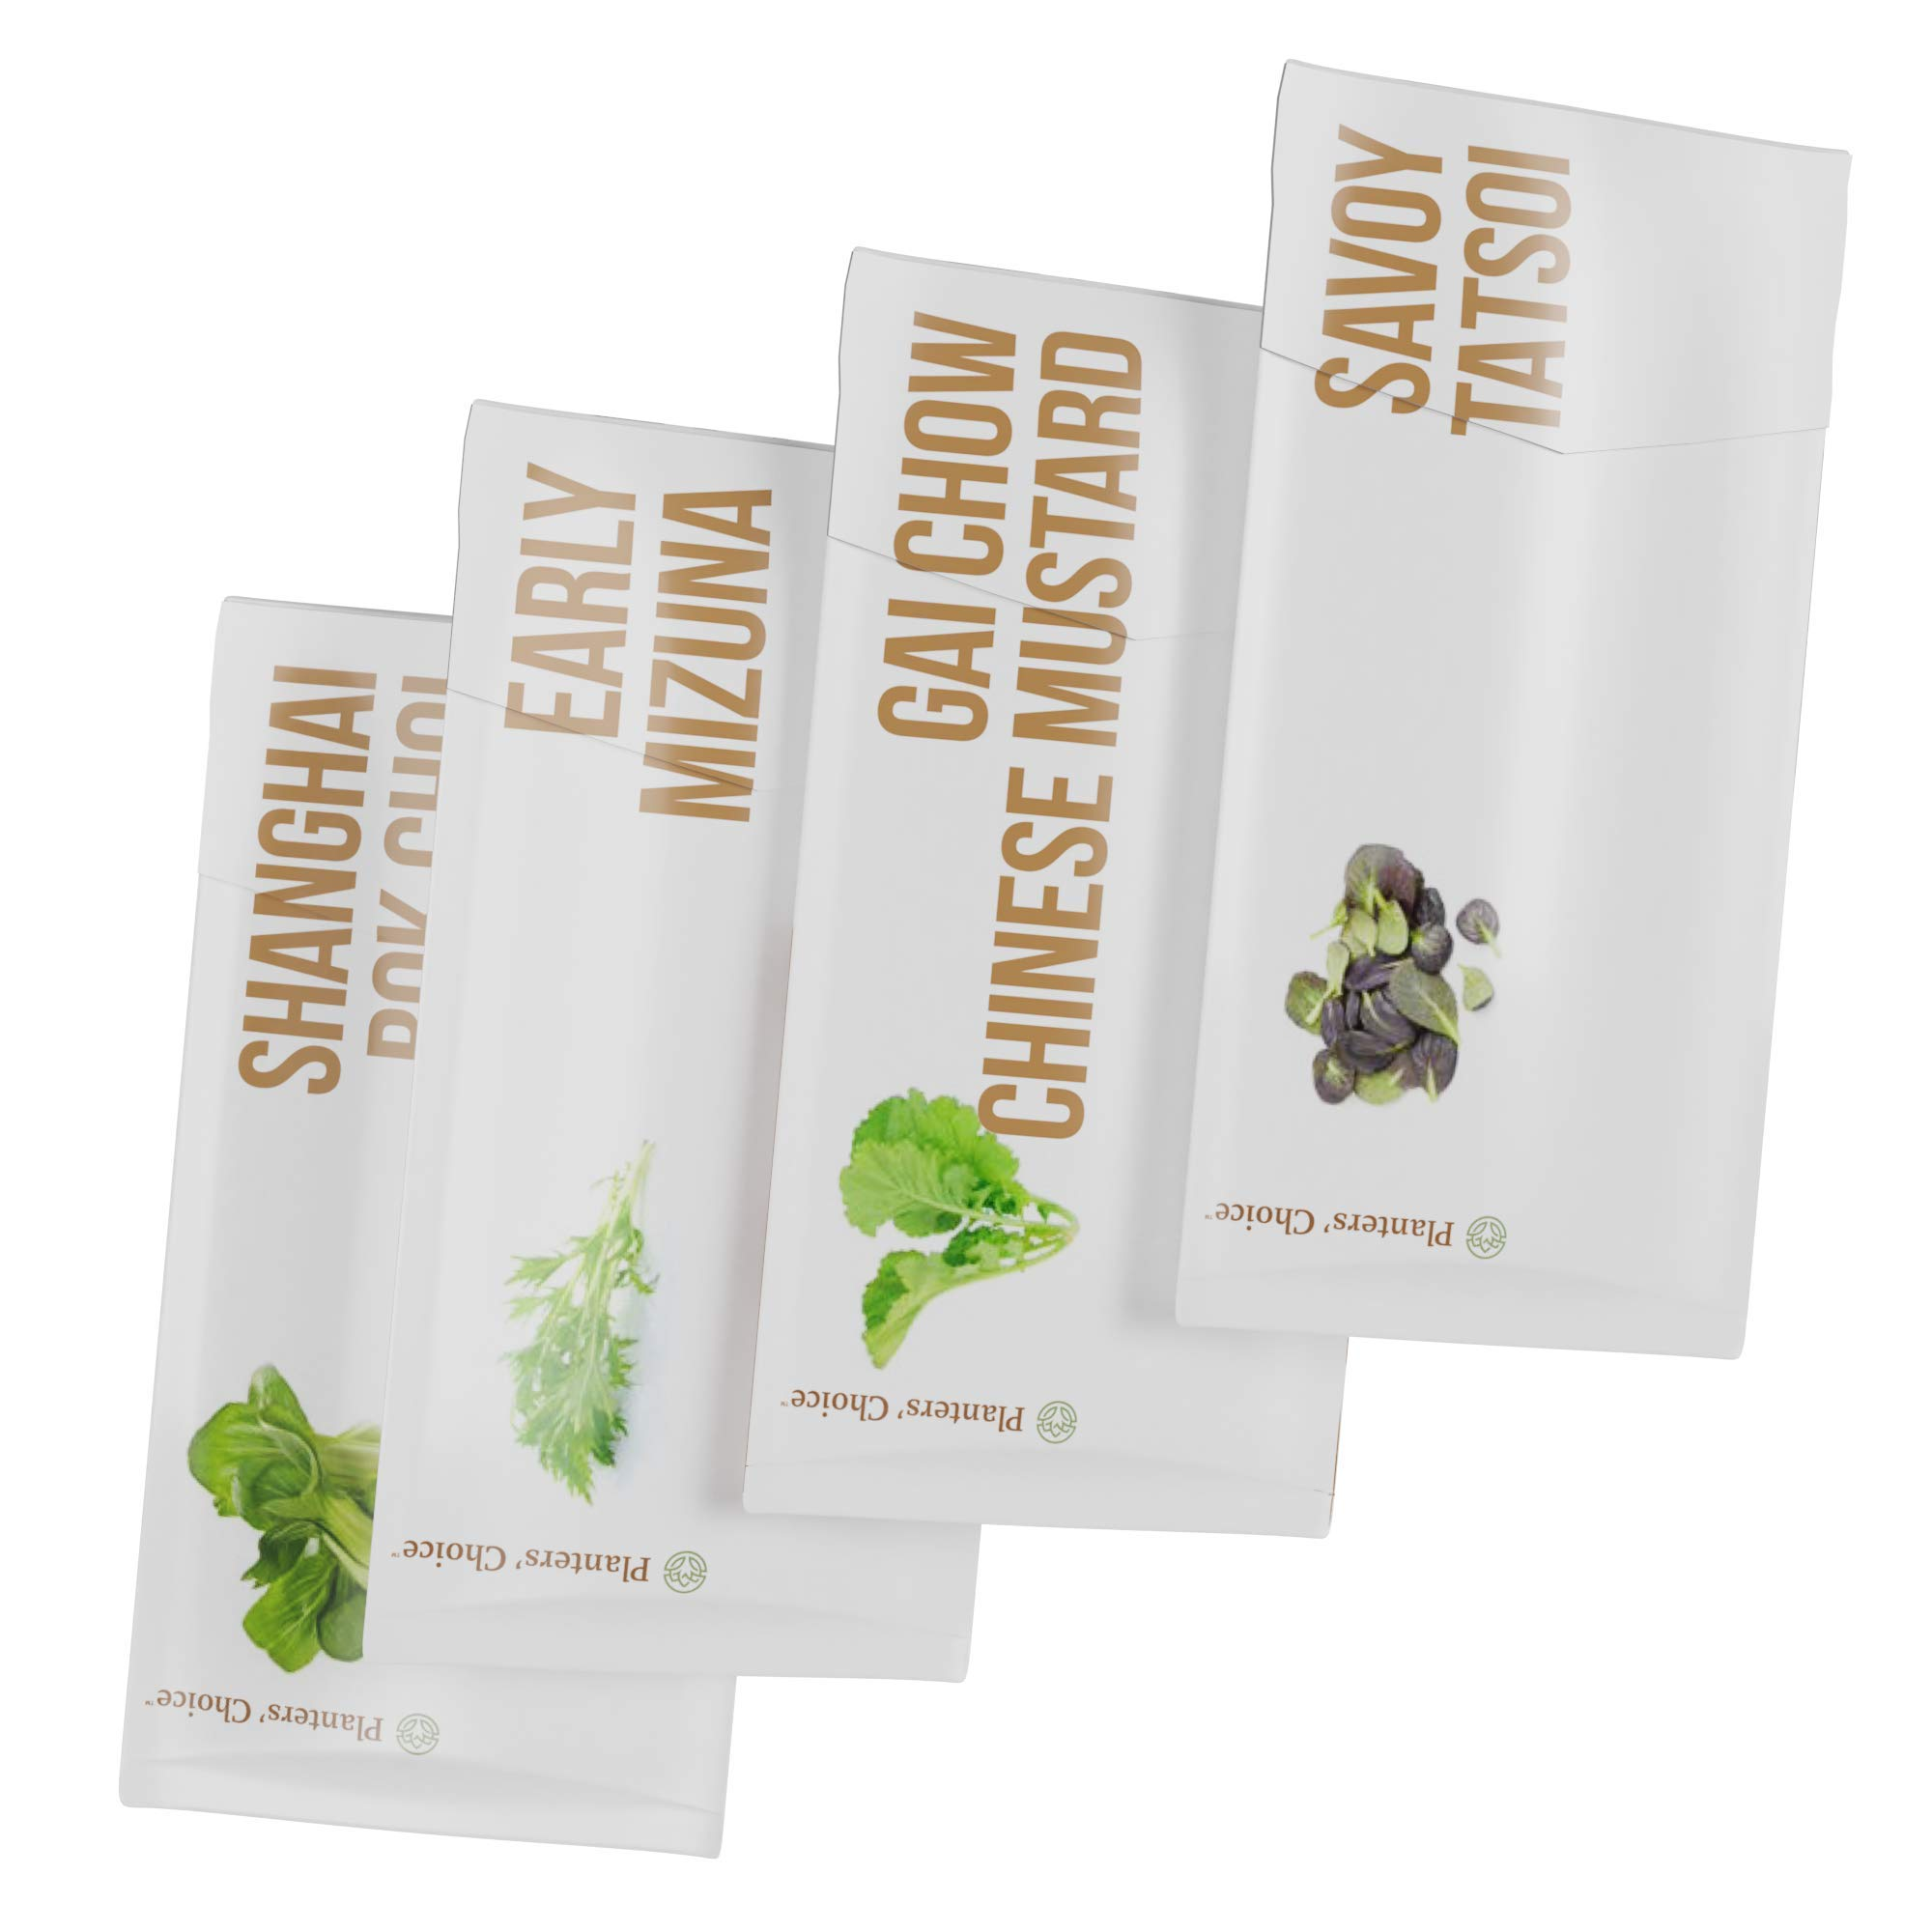 Asian Greens Growing Kit - Everything Included to Easily Grow 4 Traditional Asian Greens from Seed + Moisture Meter: Bok Choi, Mizuna, GAI Chow, Savoy Tatsoi by Planters' Choice (Image #9)